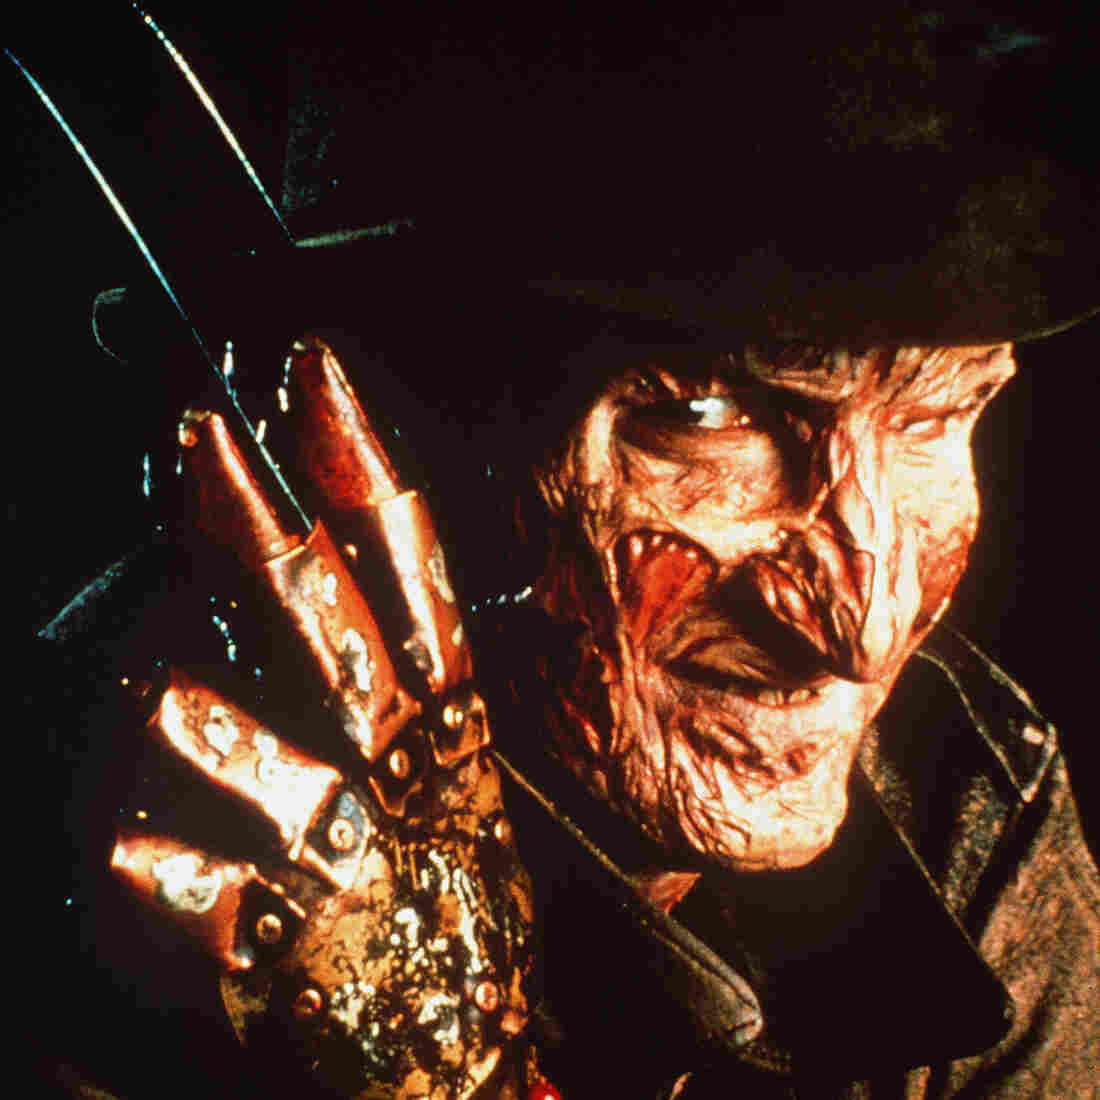 Wes Craven's most memorable creation may have been knife-fingered nightmare Freddy Krueger.